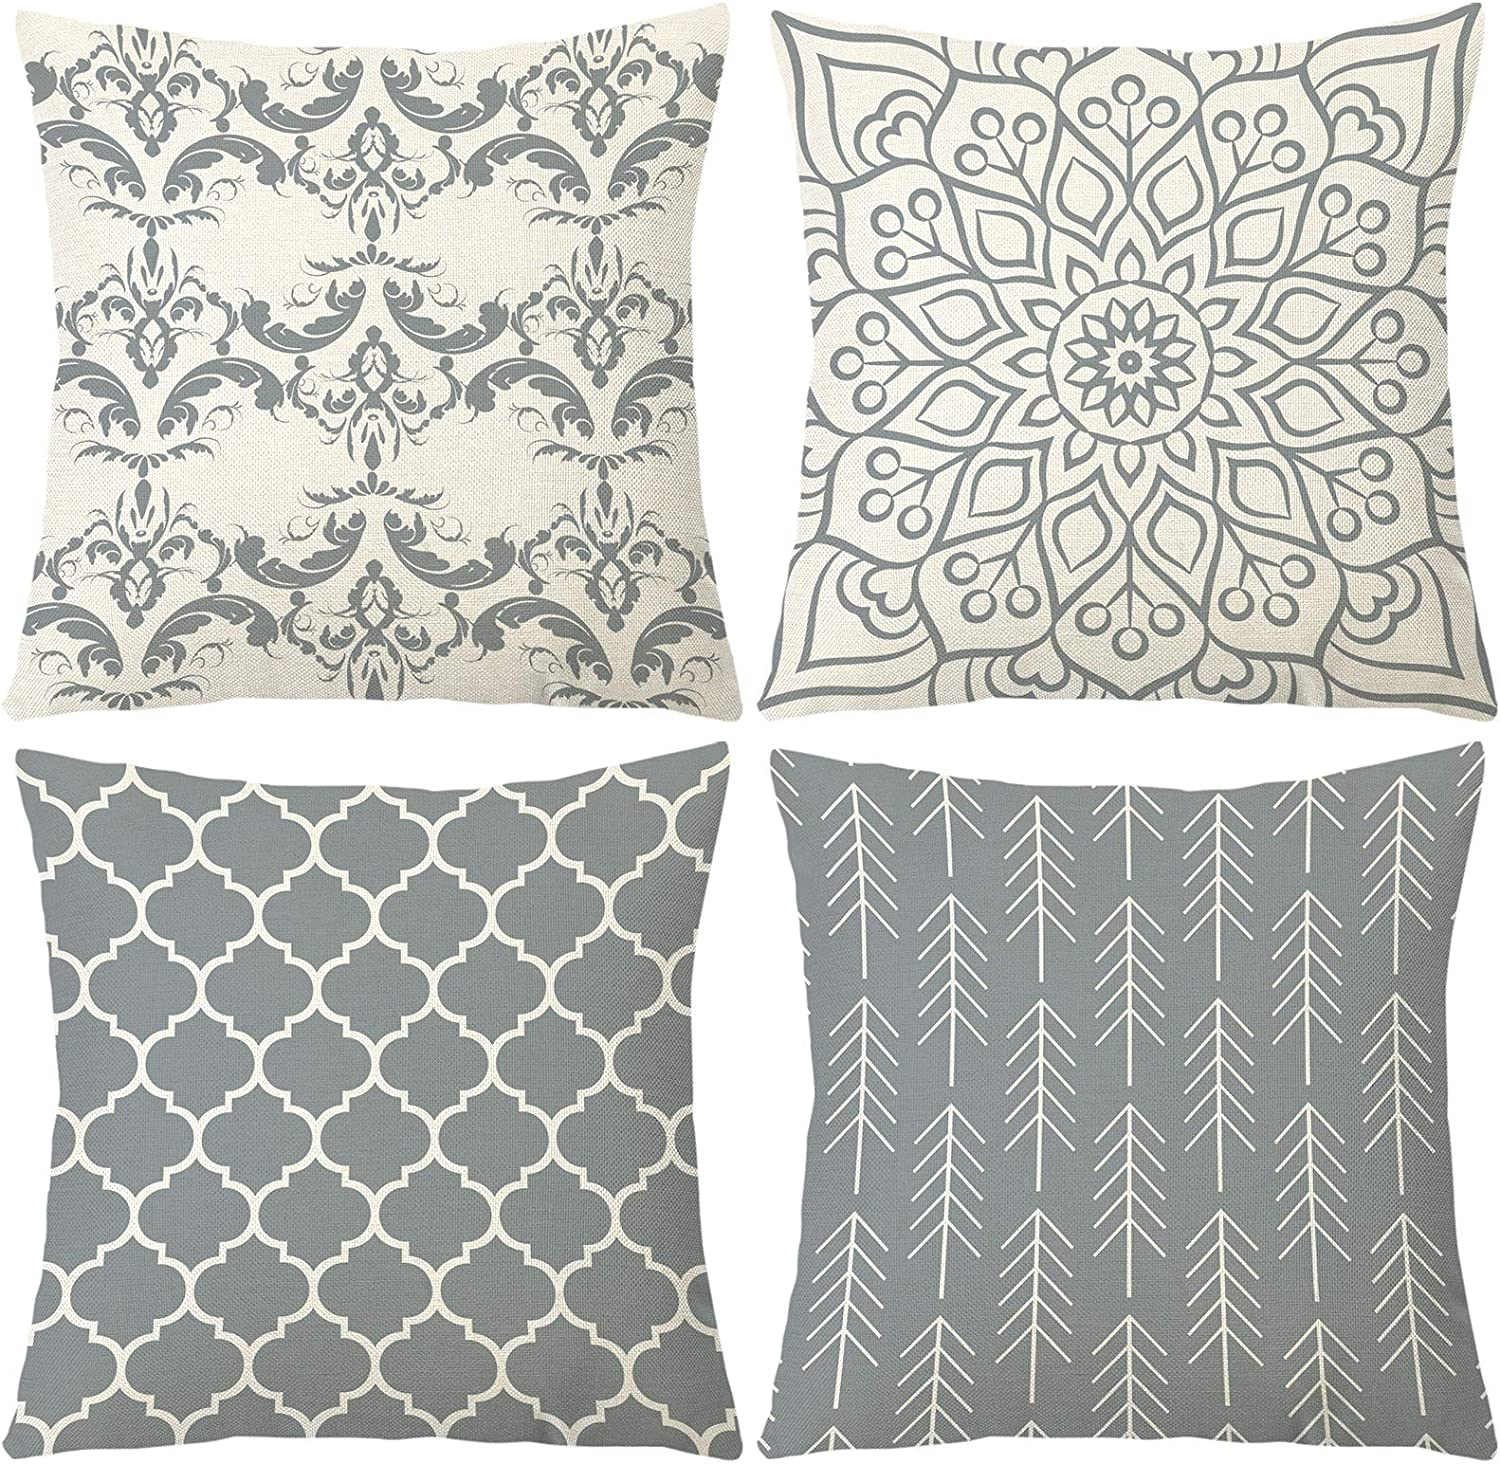 Ftuency Pillow Covers 18x18 Inches Set of 4, Modern Geometric Decorative Throw Pillow Cover, Square Sofa Linen Cushion Case for Couch Bed Car Decor 45x45cm (Grey, 18